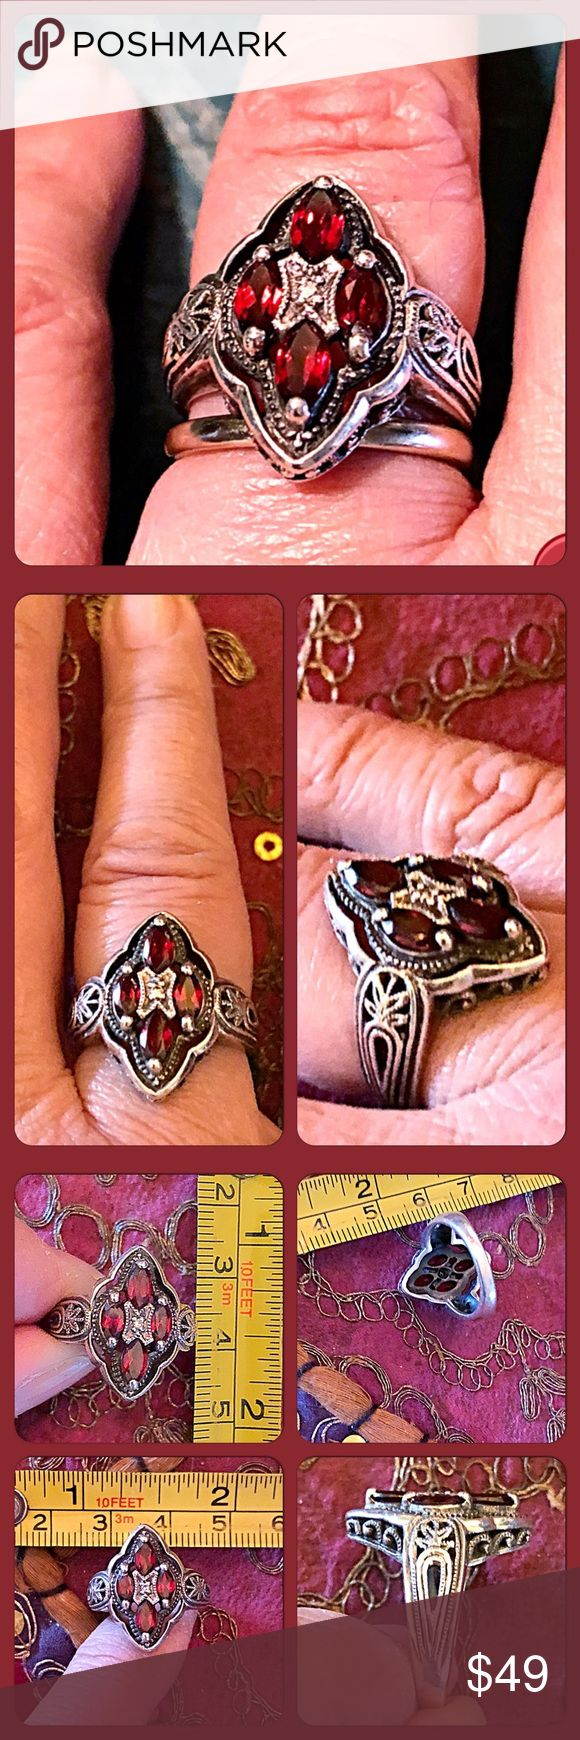 ❤️VTG .925 Sterling Silver & Red Garnet Ring❤️ Gorgeous Victorian/Edwardian style ring that has prong set red marquise shaped garnet stones set in 925 sterling silver. The sides have detailed carvings making it not just an ordinary looking ring. I've had this since the late 1980's and it's still in great vintage condition. About 5.5gms in wt. Size 6. Vintage Jewelry Rings